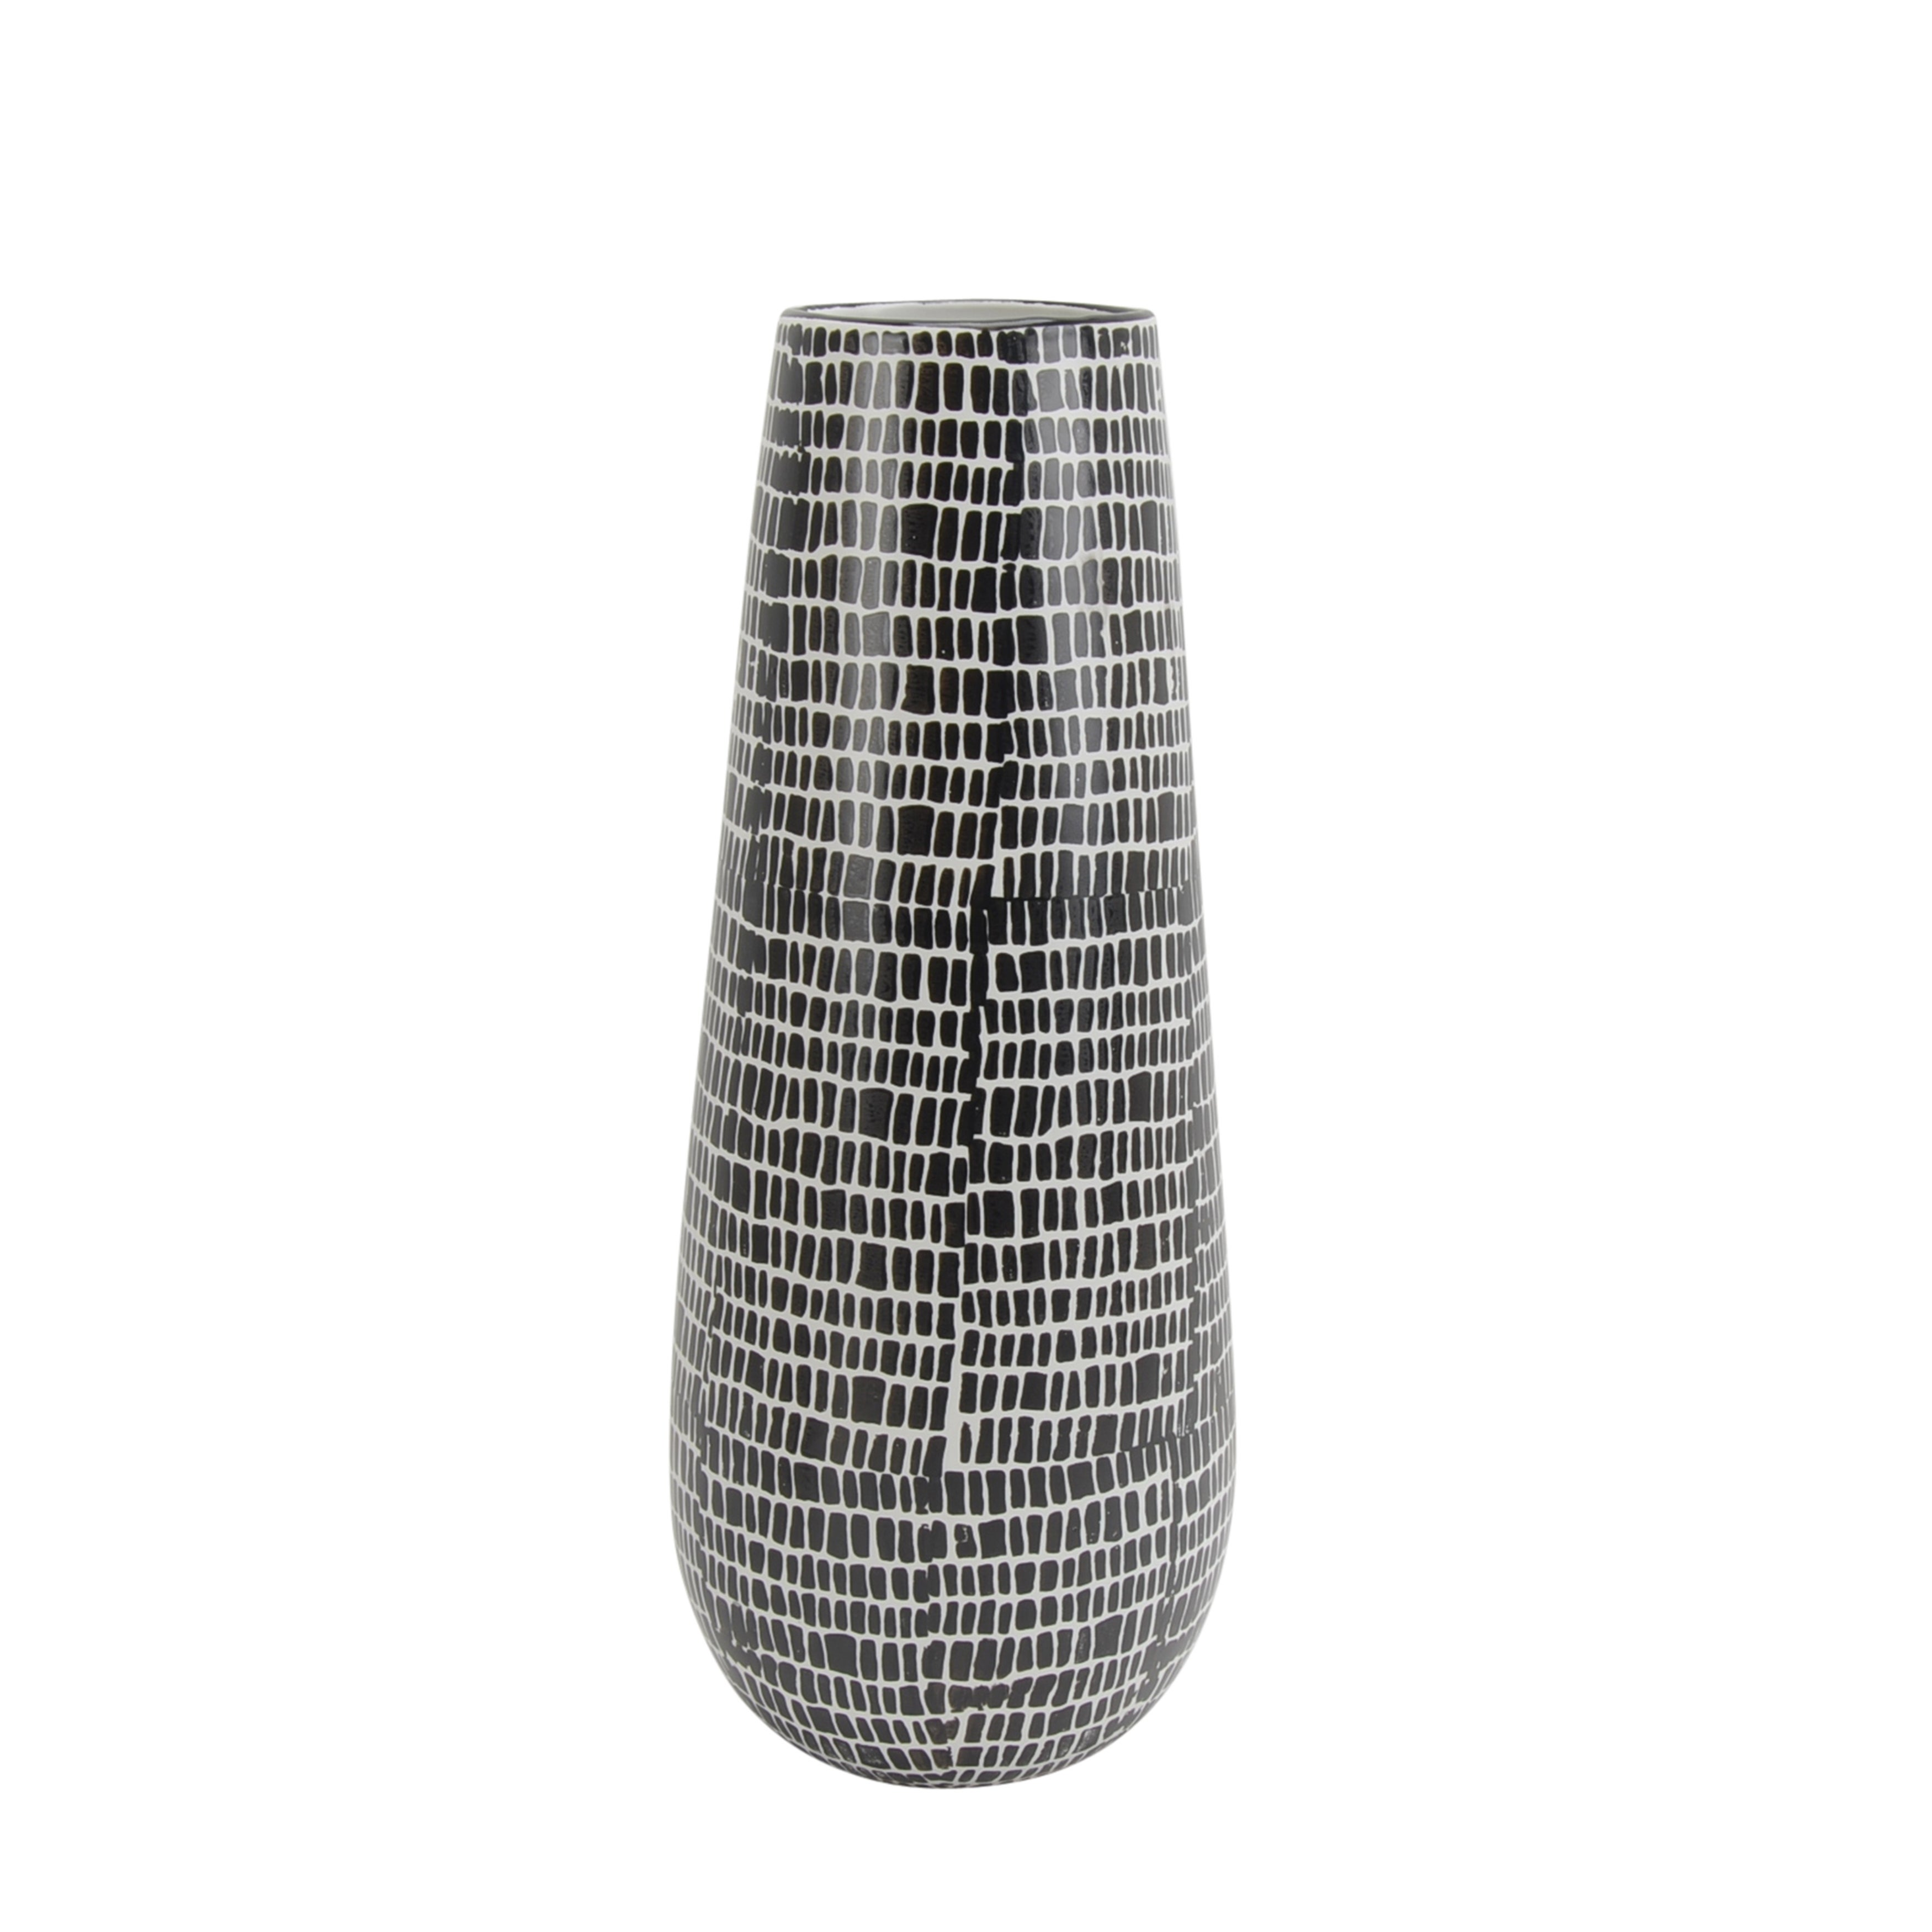 Ceramic Vase with Cobble Pattern Design and Curved Base, White and Black